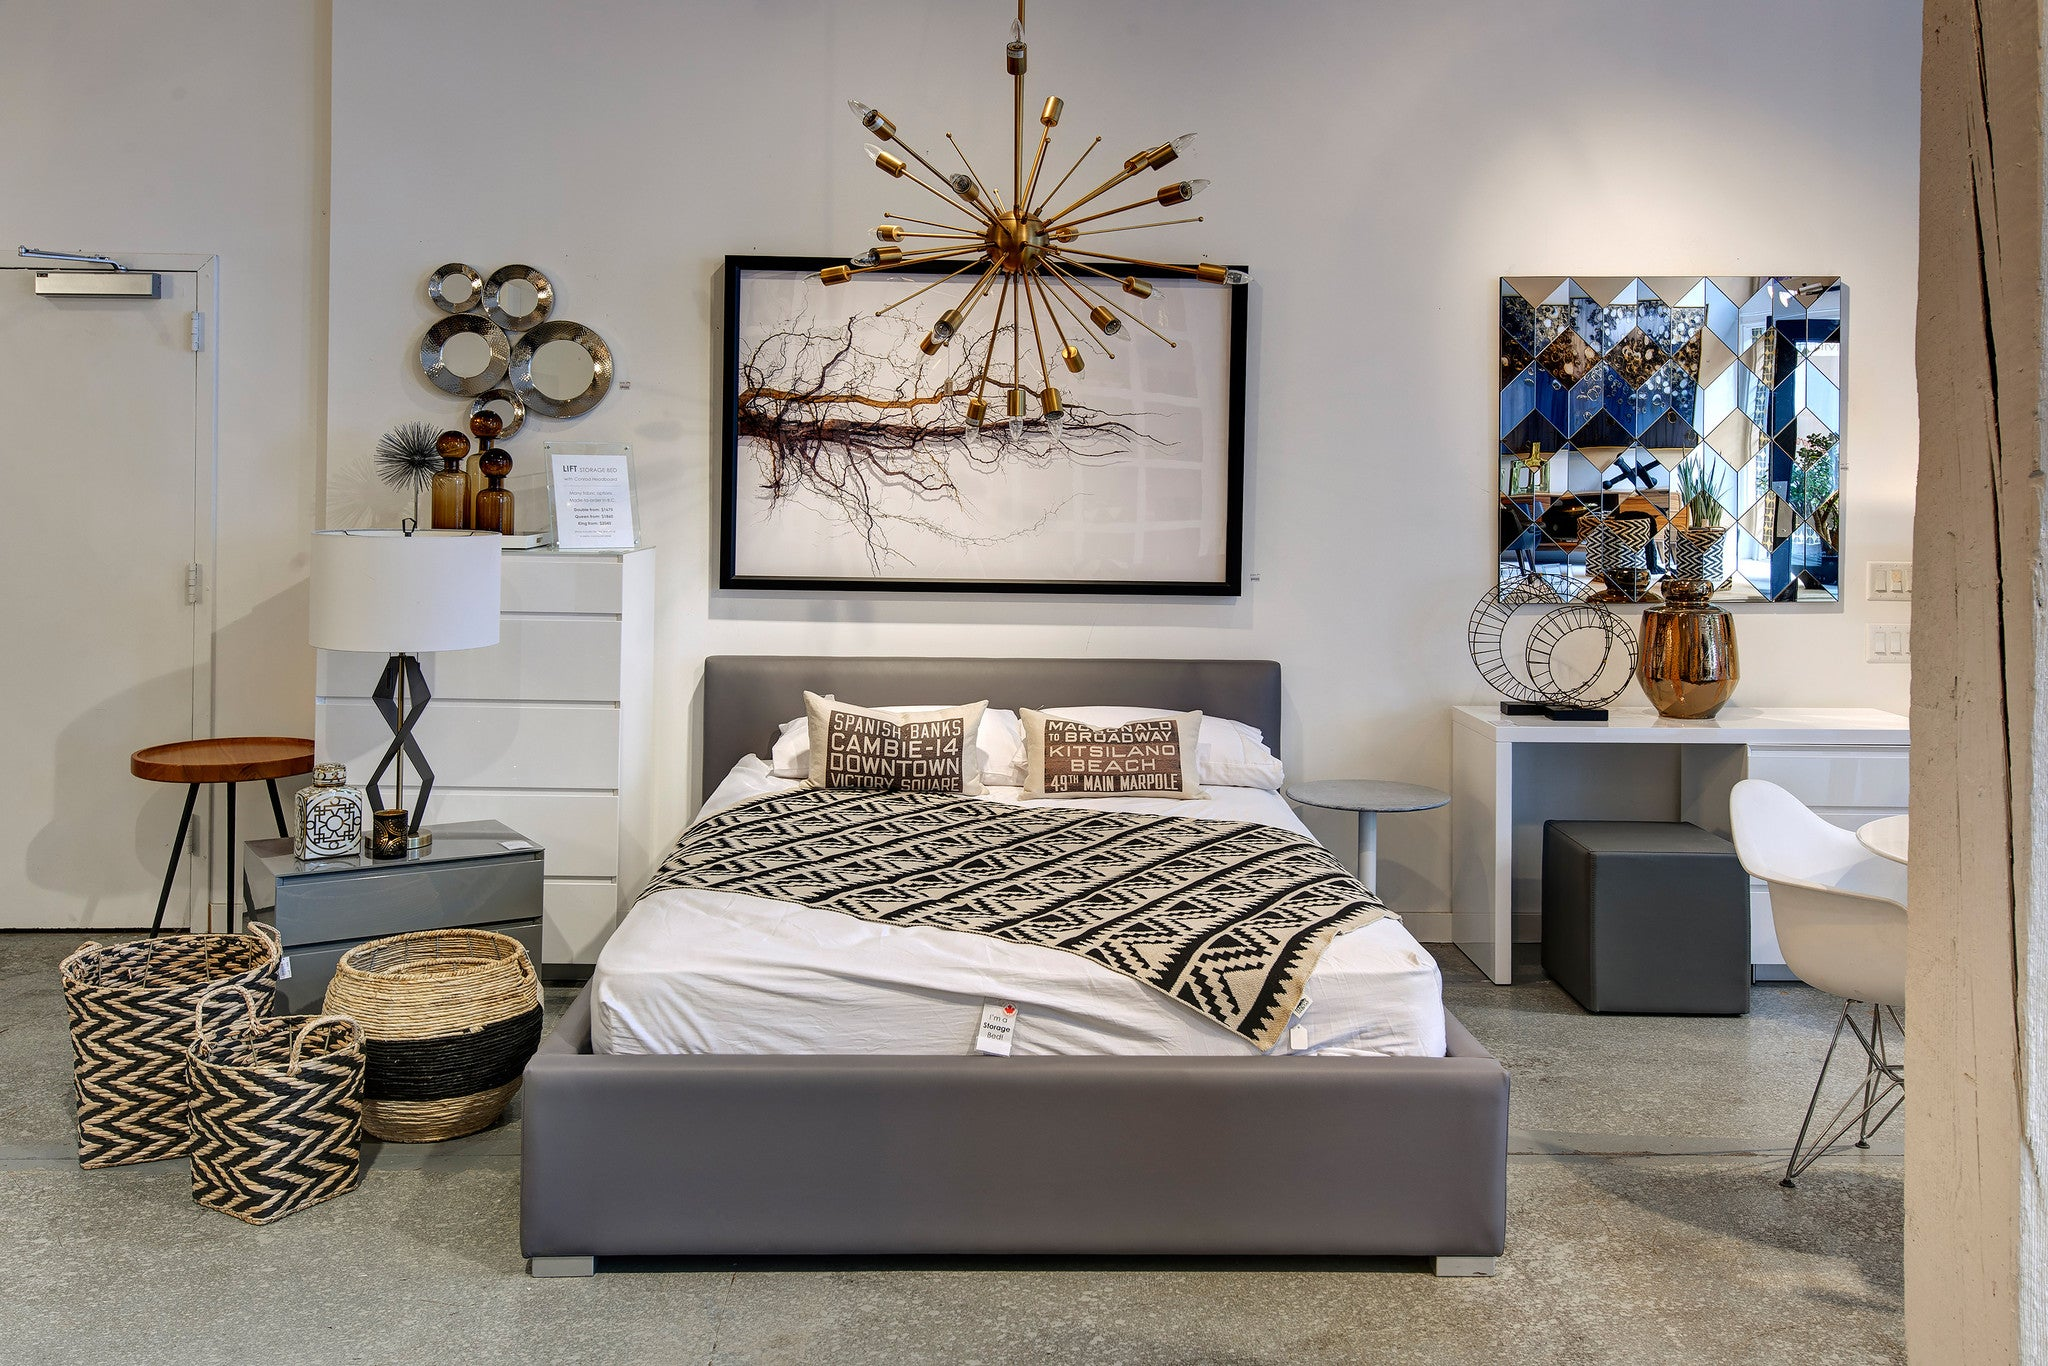 Superb Conrad Storage Bed Lift Series Shop For Bedroom Alphanode Cool Chair Designs And Ideas Alphanodeonline